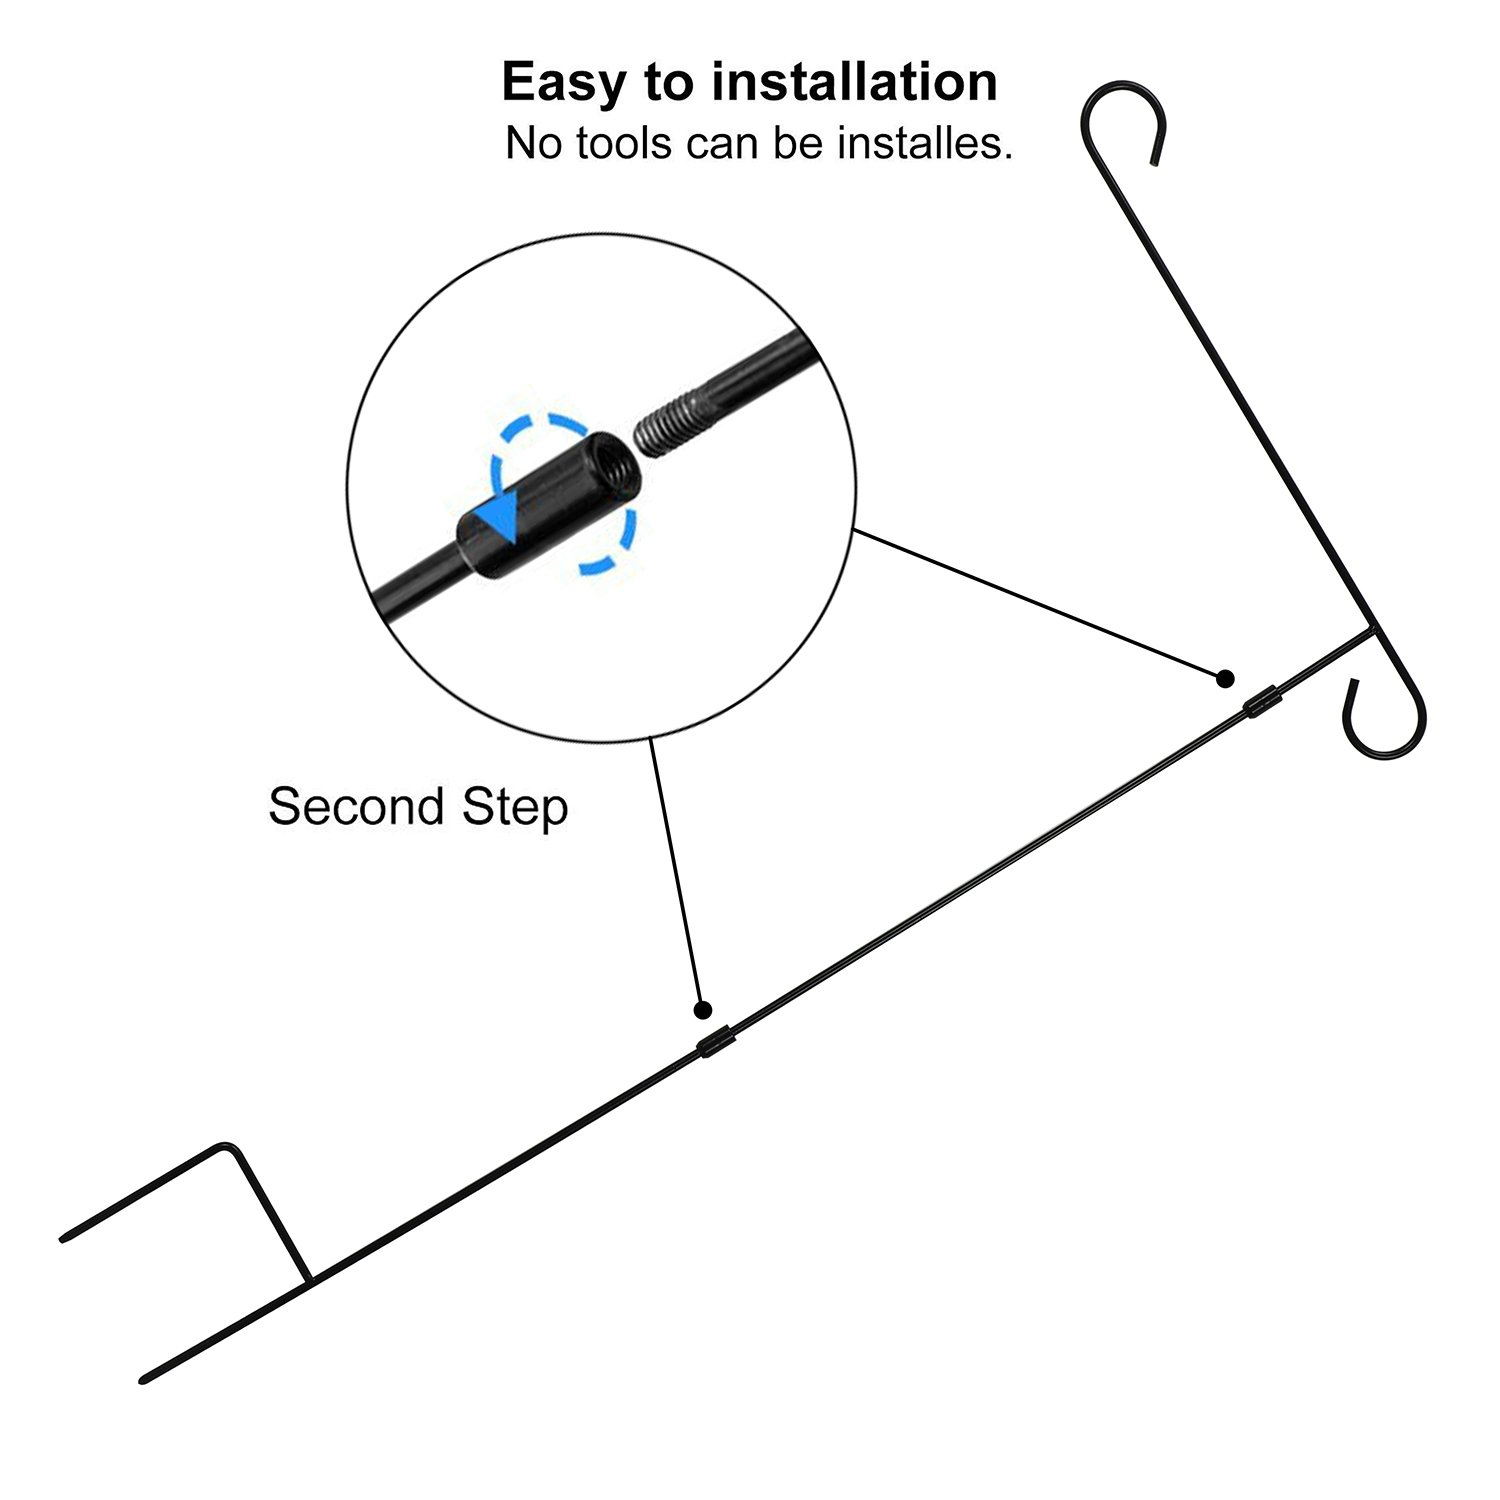 HOOSUN Garden Flag Stand Holder Pole Easy to Install Strong Sturdy Wrought Iron 36'' x 18'' Fits 12.5'' x 18'' Mini Flag with 1 Tiger Anti-Wind Clip 2 Anti-Wind Spring Stoppers by HOOSUN (Image #4)